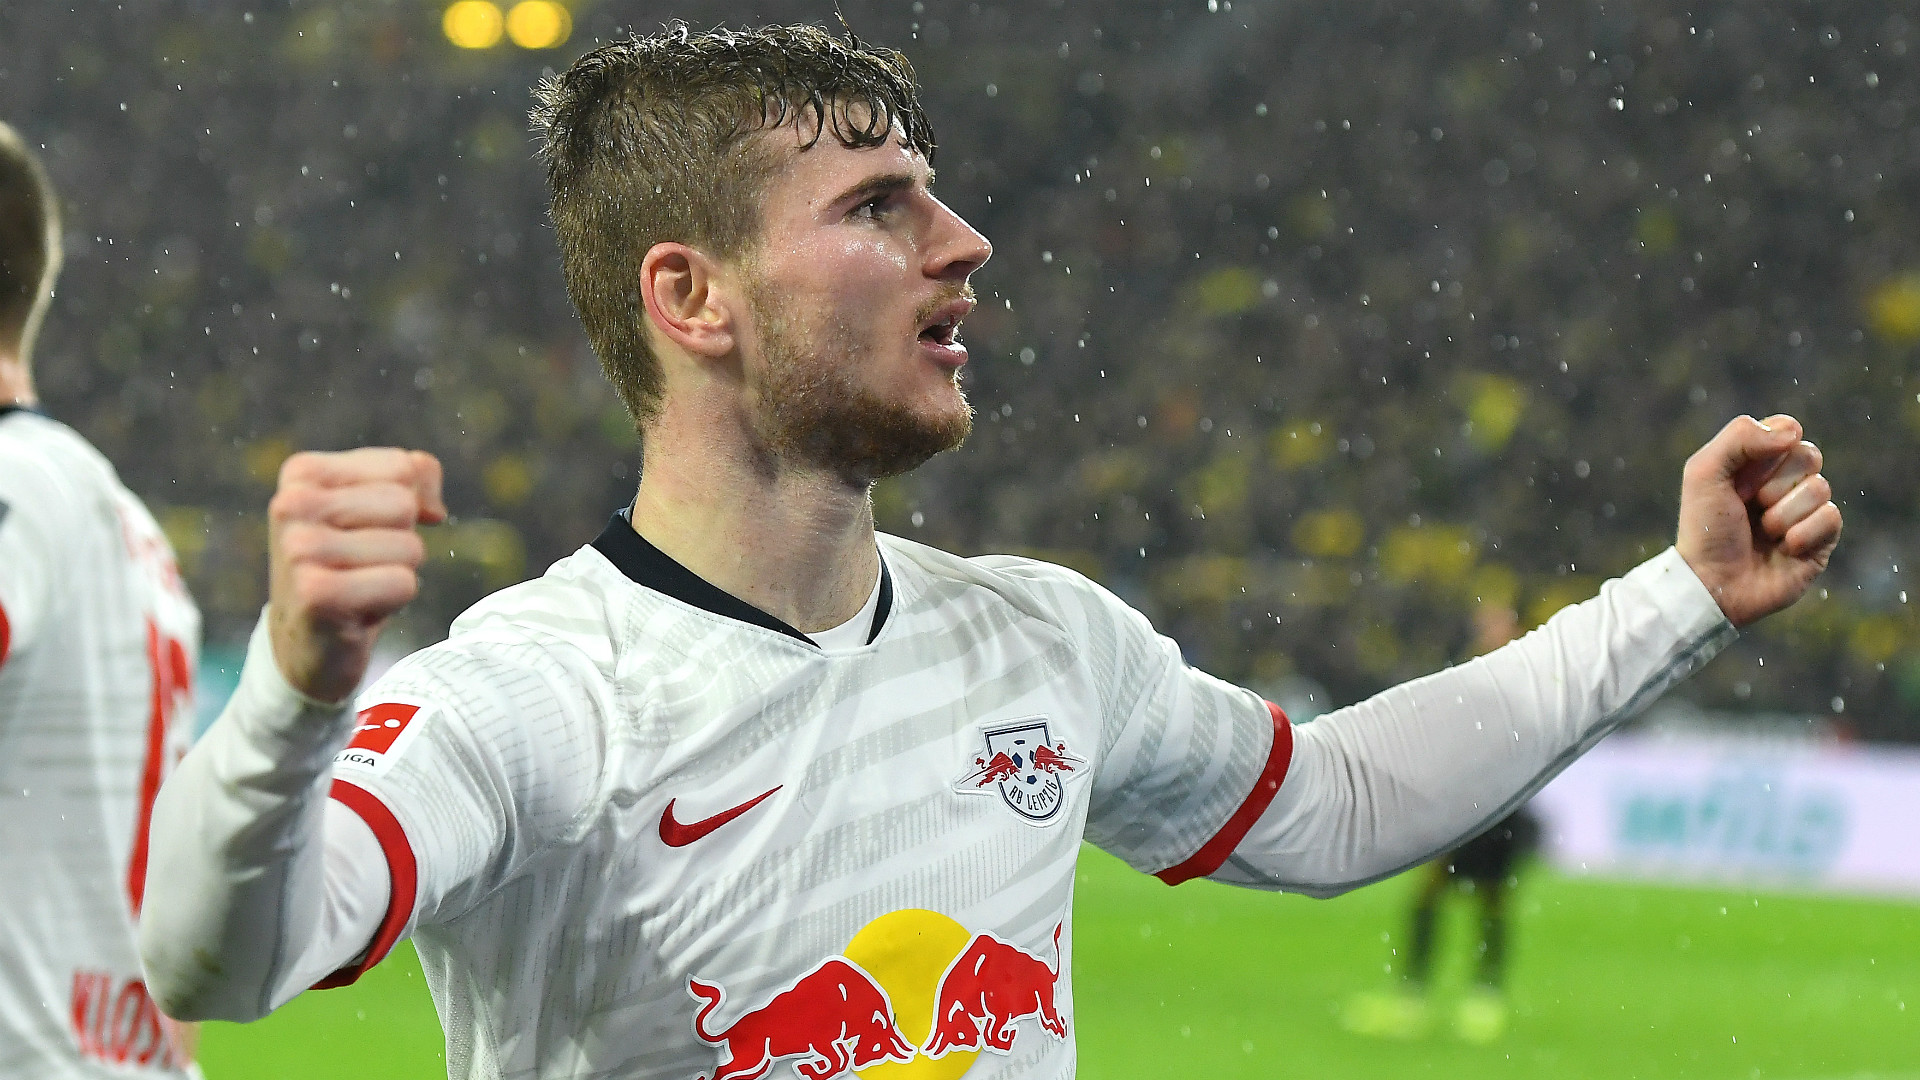 Chelsea target Werner talks up 'interesting' Premier League as transfer talk grows